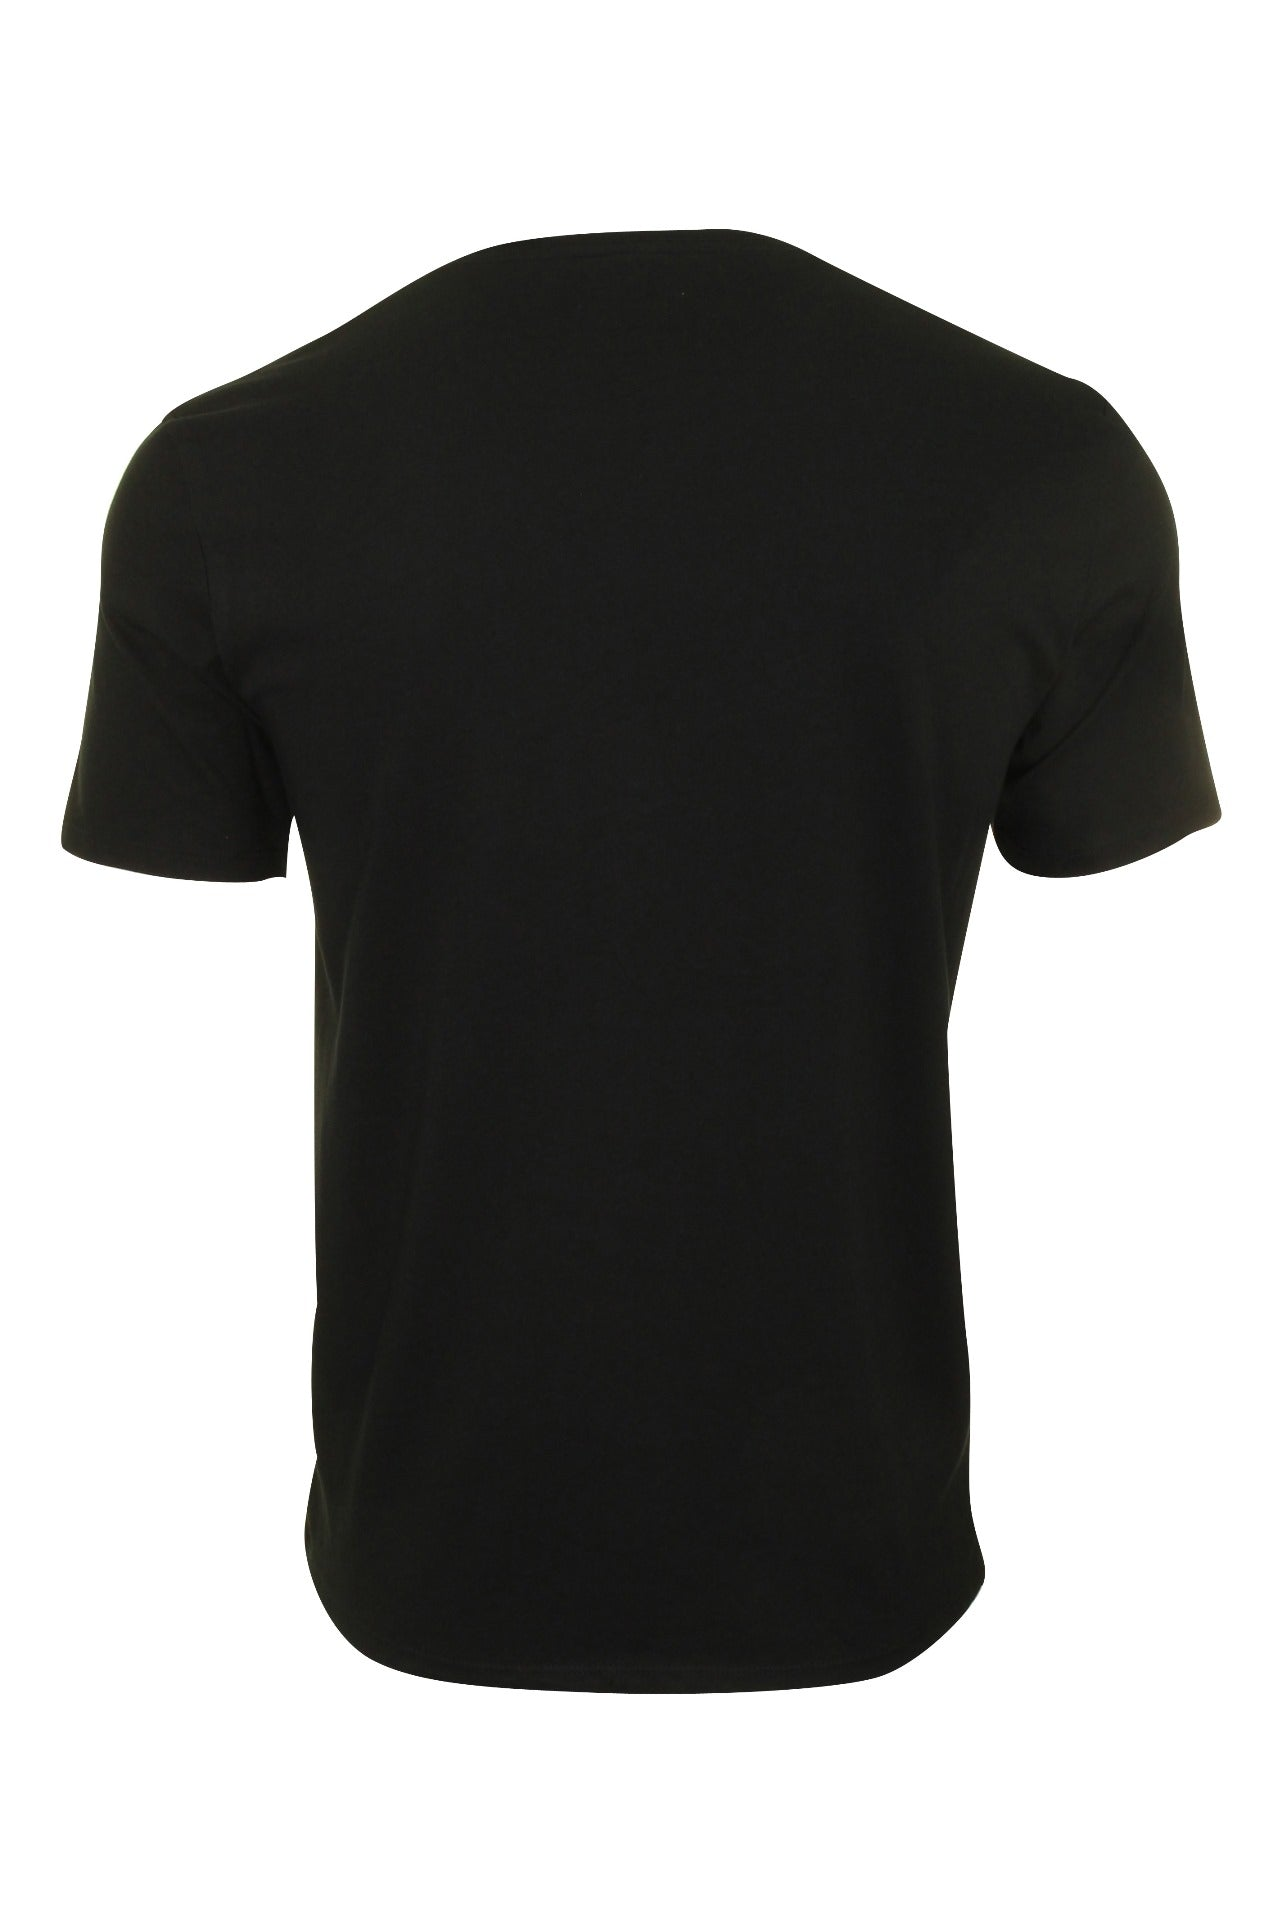 O'Neill Mens 'Foundation' T-Shirt-2